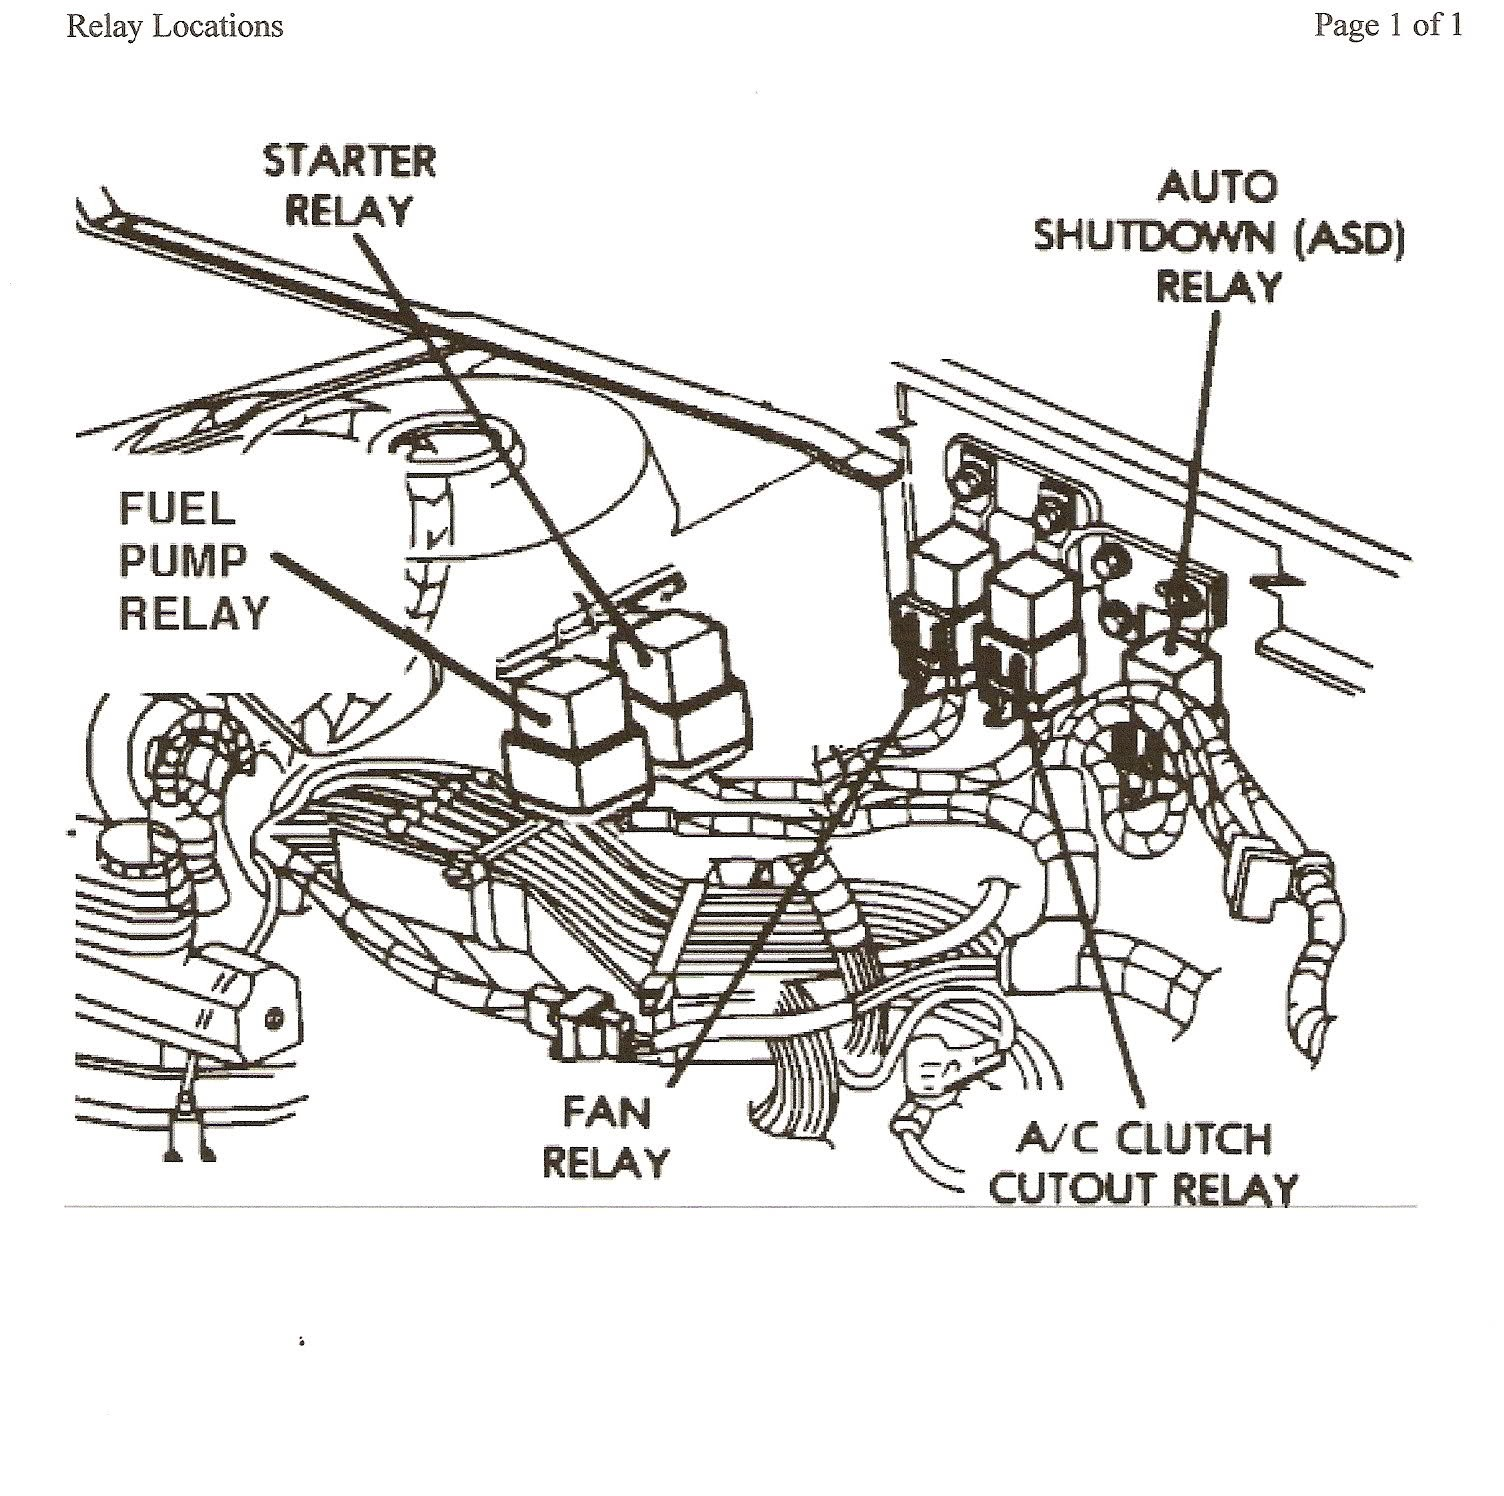 2004 Honda Odyssey Wiring Diagram together with Dodge Durango 4 7 2005 Specs And Images as well Dodge Neon Transmission Wiring Diagram besides Showassembly besides 07 300 Chrysler Starter Wiring. on chrysler pacifica schematics